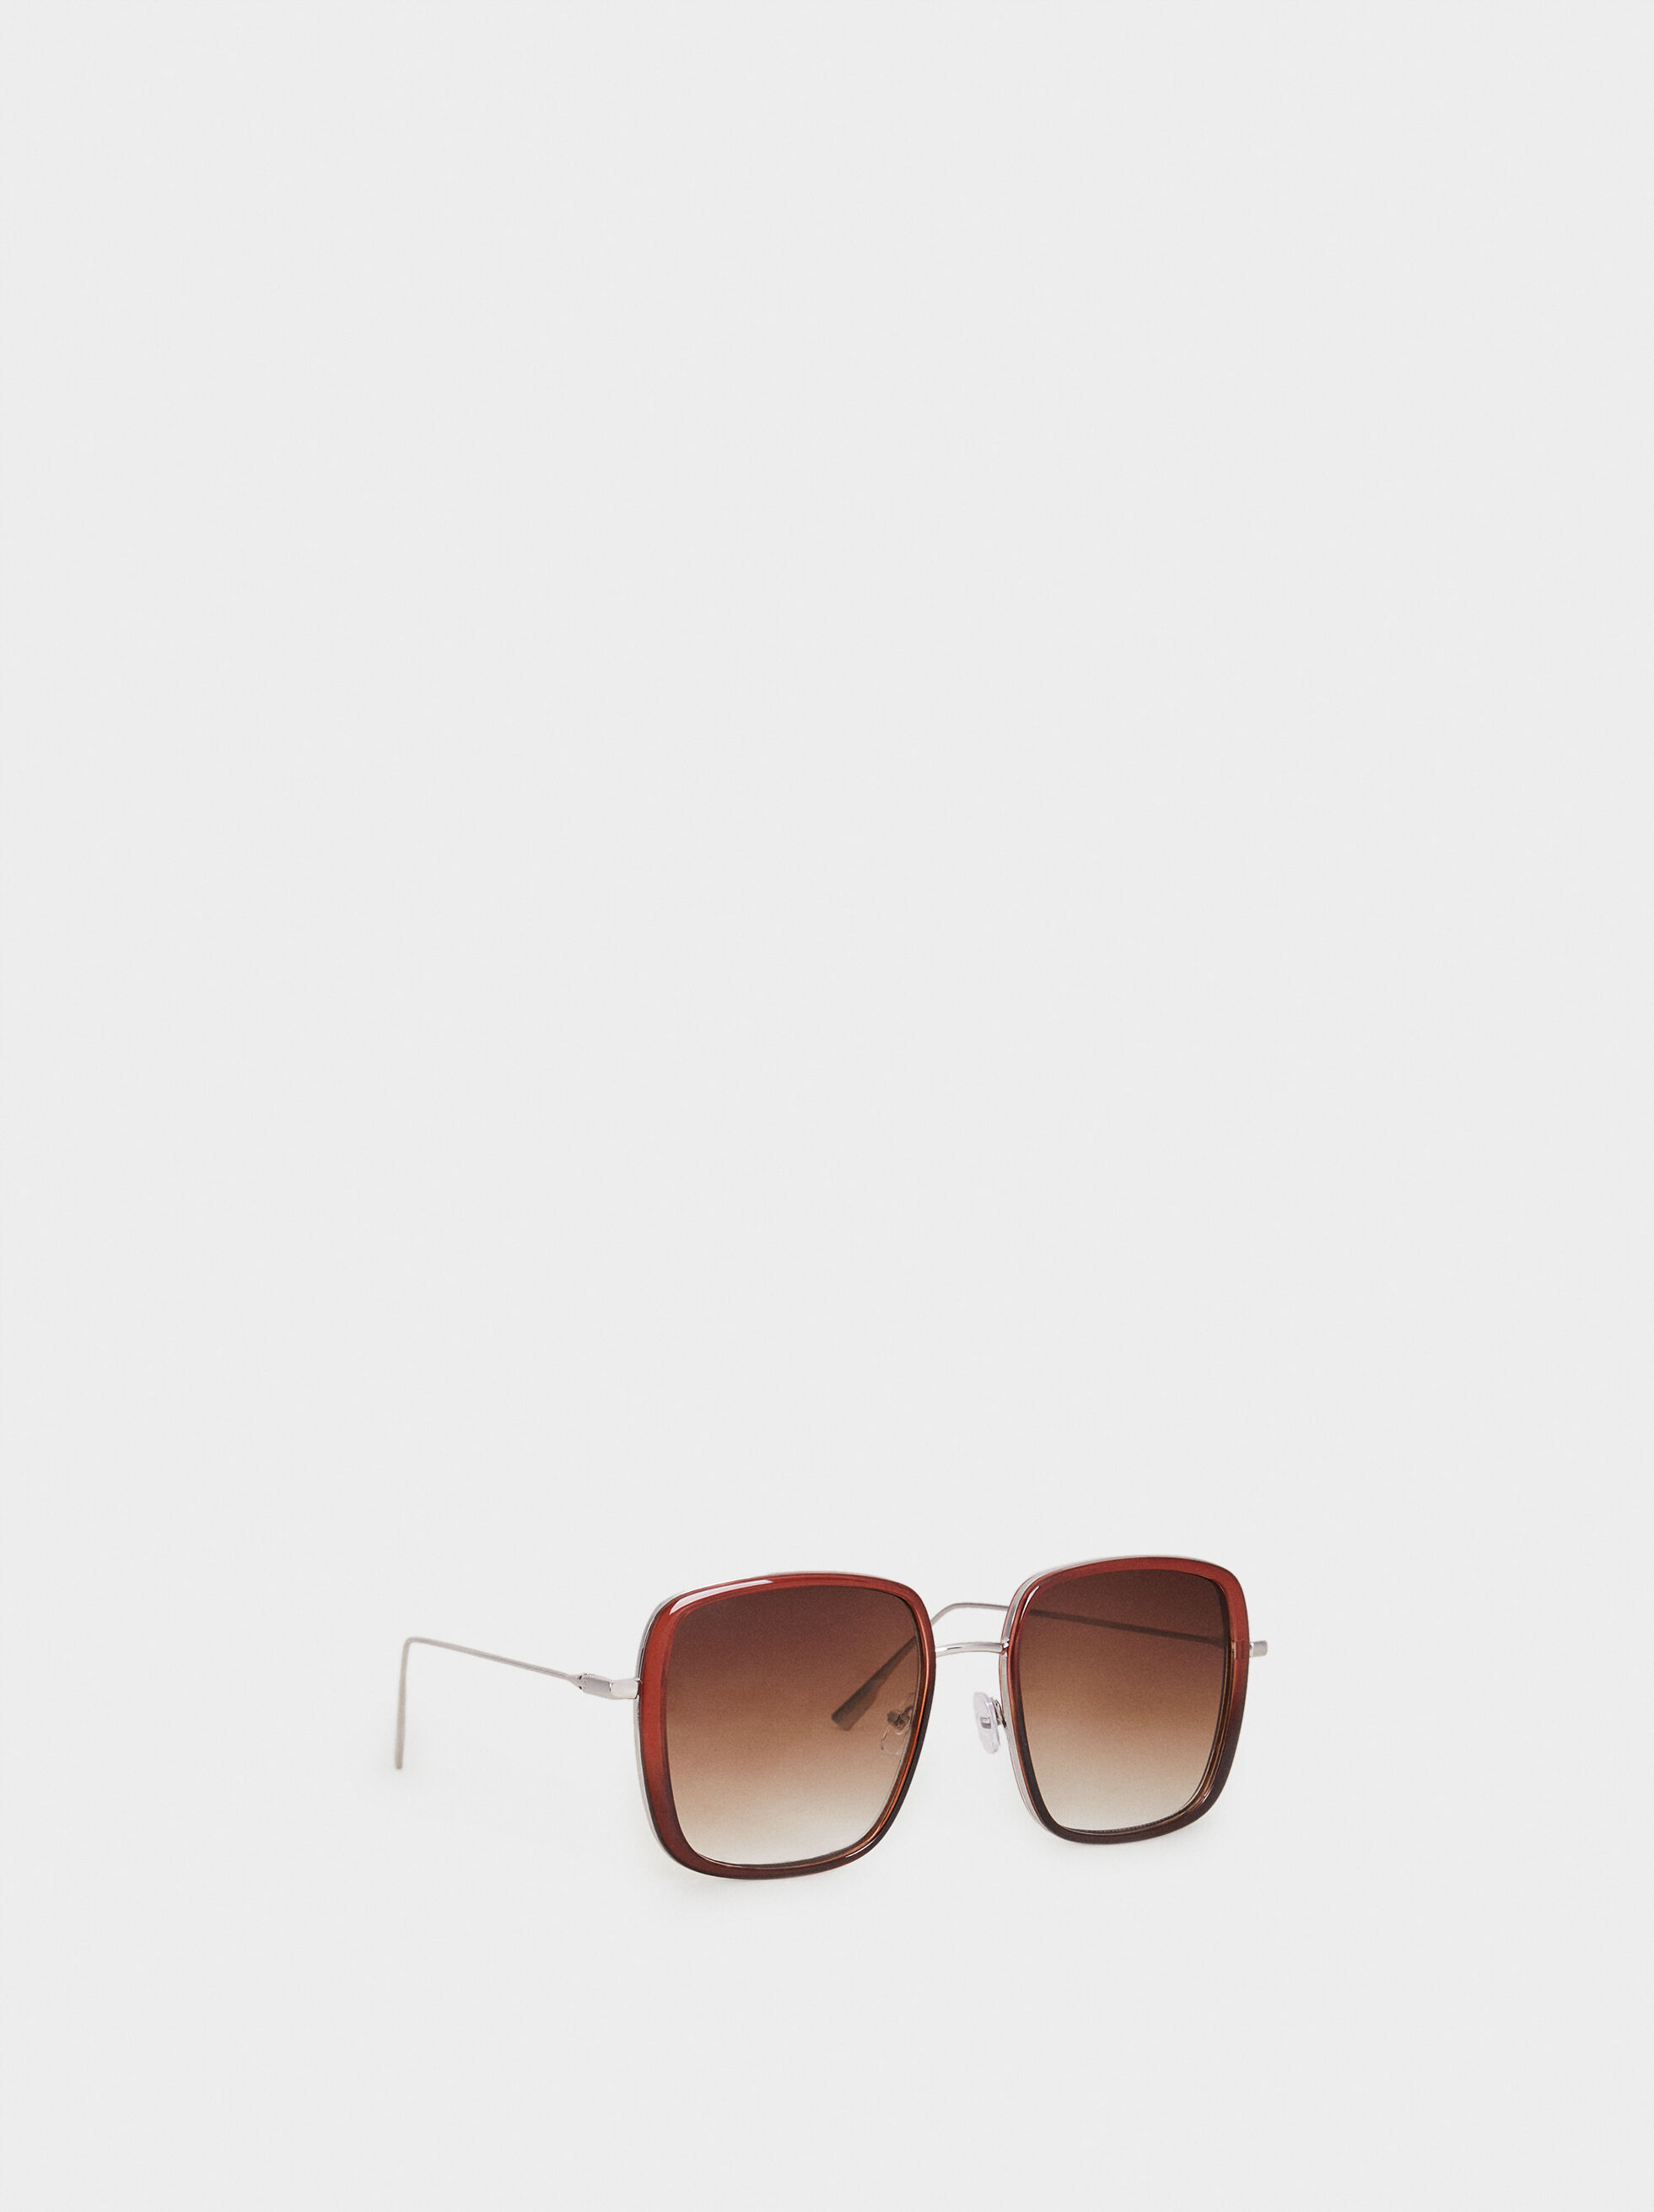 Square Sunglasses, Bordeaux, hi-res